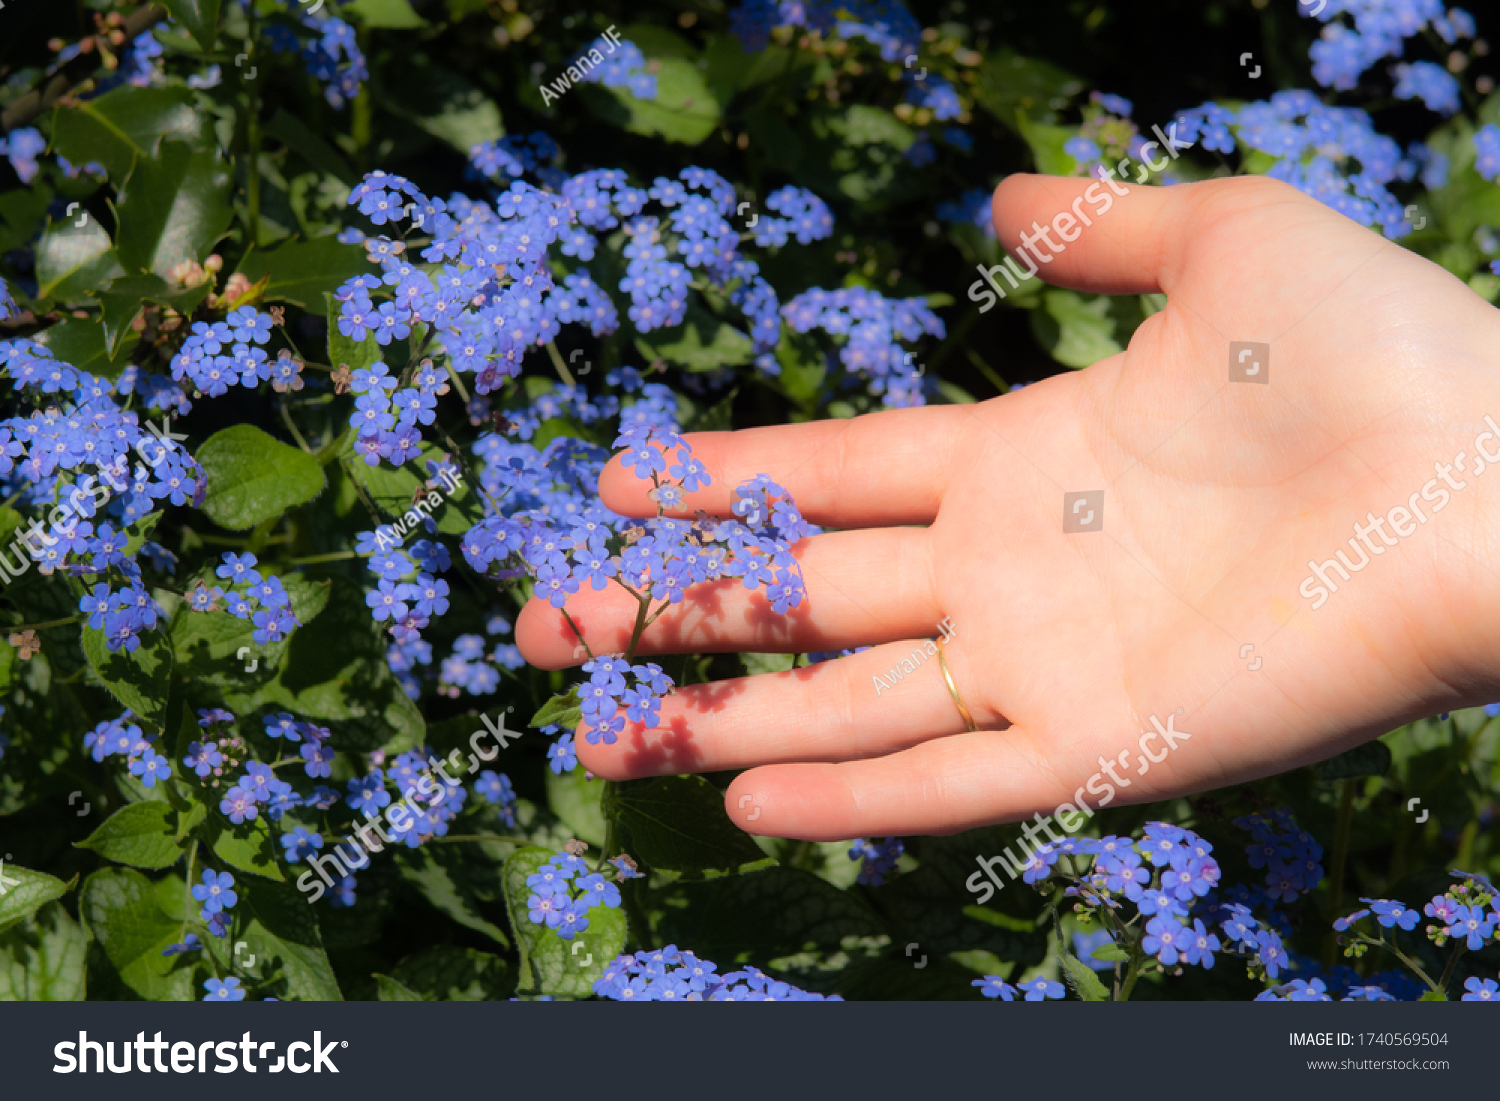 Closeup view of a hand palm and fingers reaching some myosotis flowers